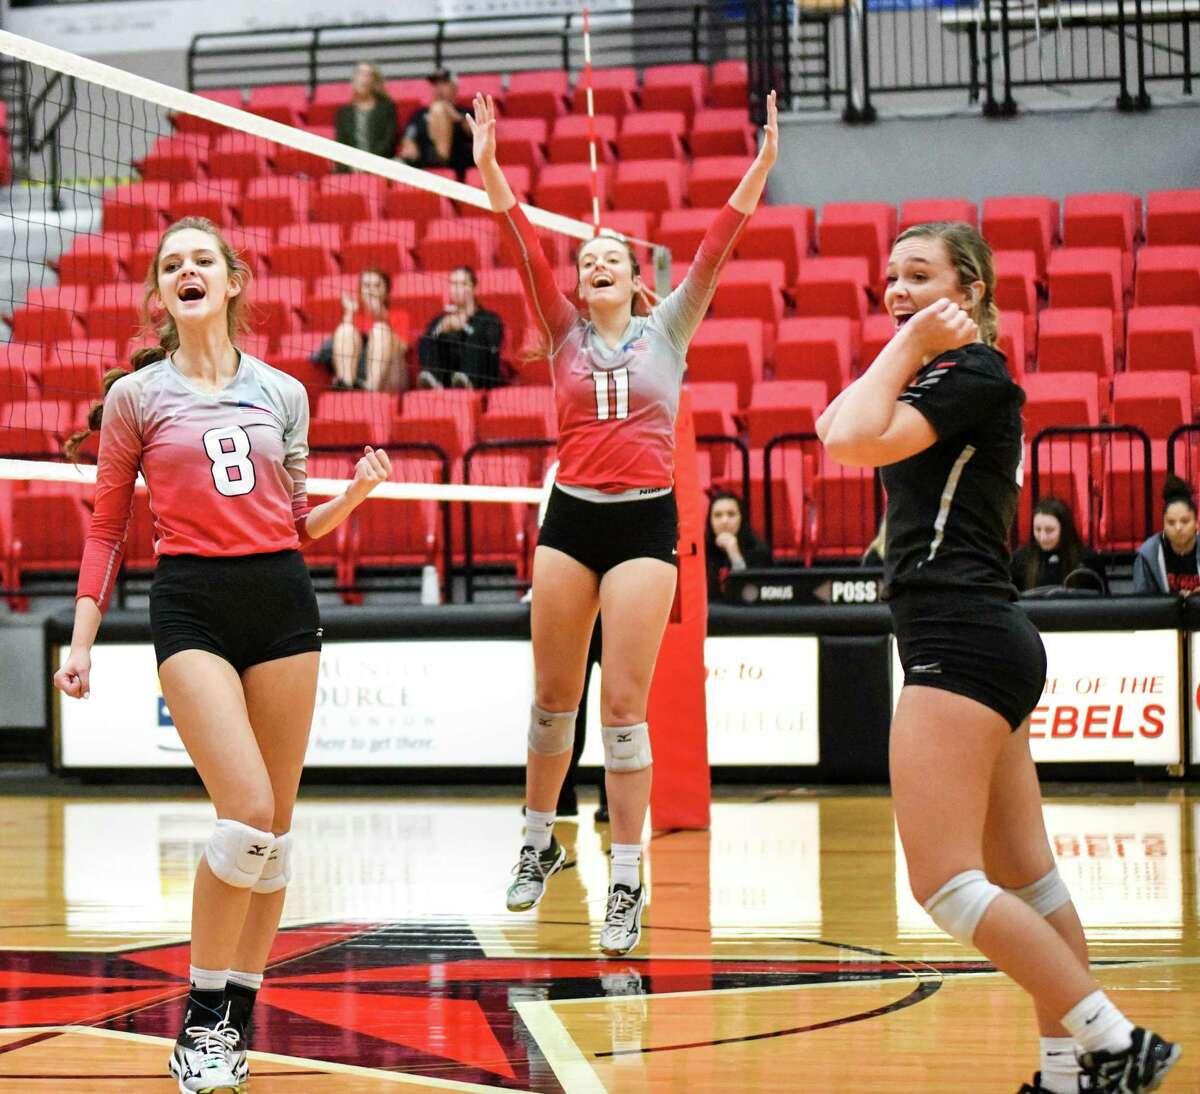 Hargrave's Laynee Beam (8), Kylie WIllis (11) and Kenzie Wiggins (black shirt) celebrate the Lady Falcons' victory over Hardin-Jefferson in the Bi-District playoff match at Lee College in Baytown on Nov. 5